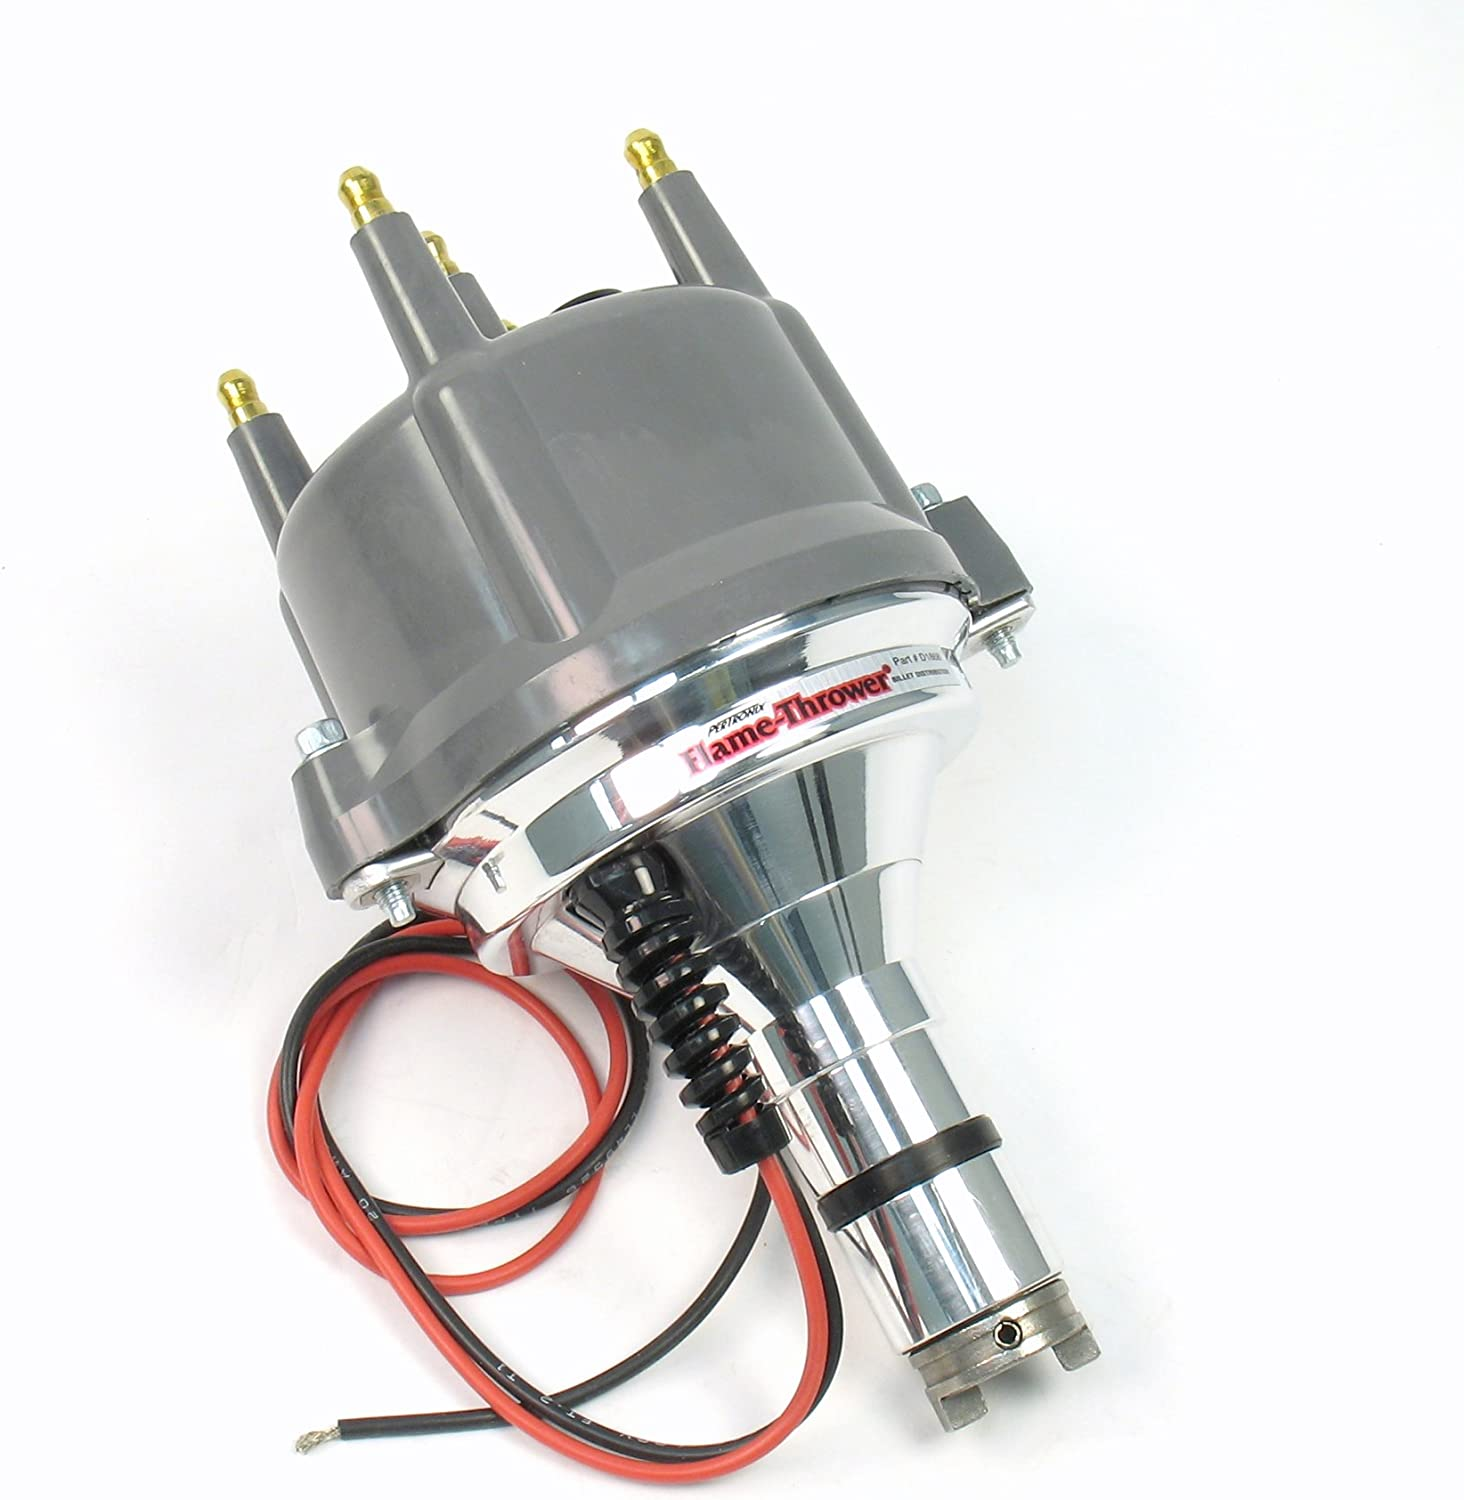 Pertronix D186813 Flame-Thrower Plug and Play with Ignitor Non Vacuum Gray Cap Billet Electronic Distributor with Ignitor II Technology for VW Type 1 Engine